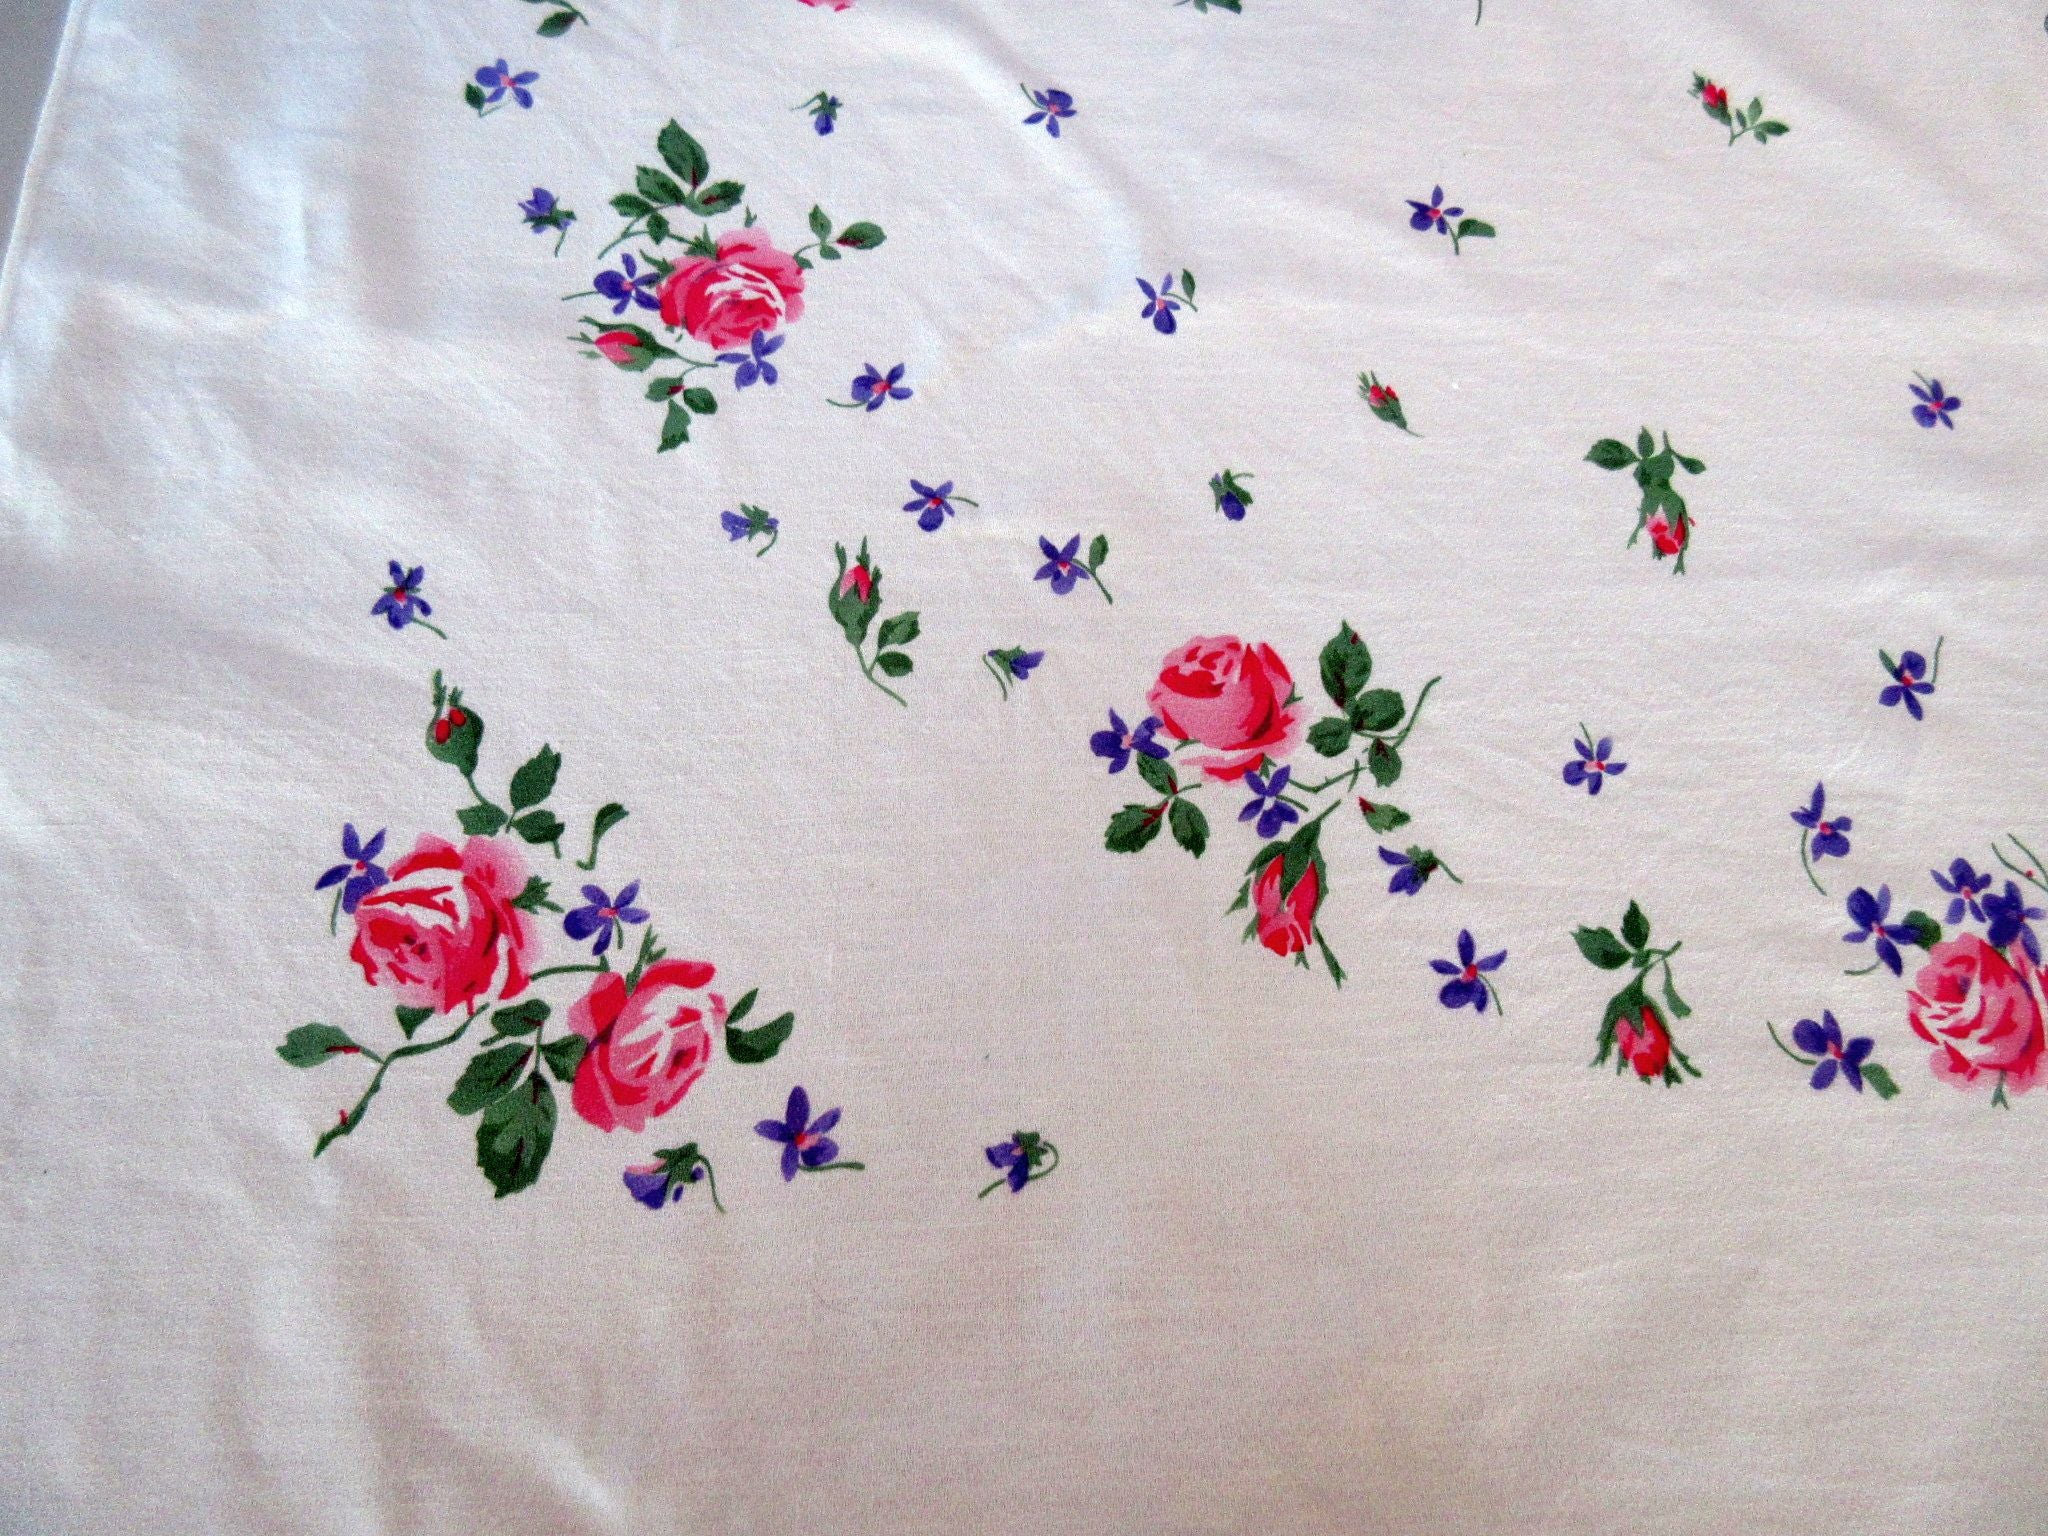 Sweet Pink Roses Purple Violets Floral Vintage Printed Tablecloth (57 X 50)